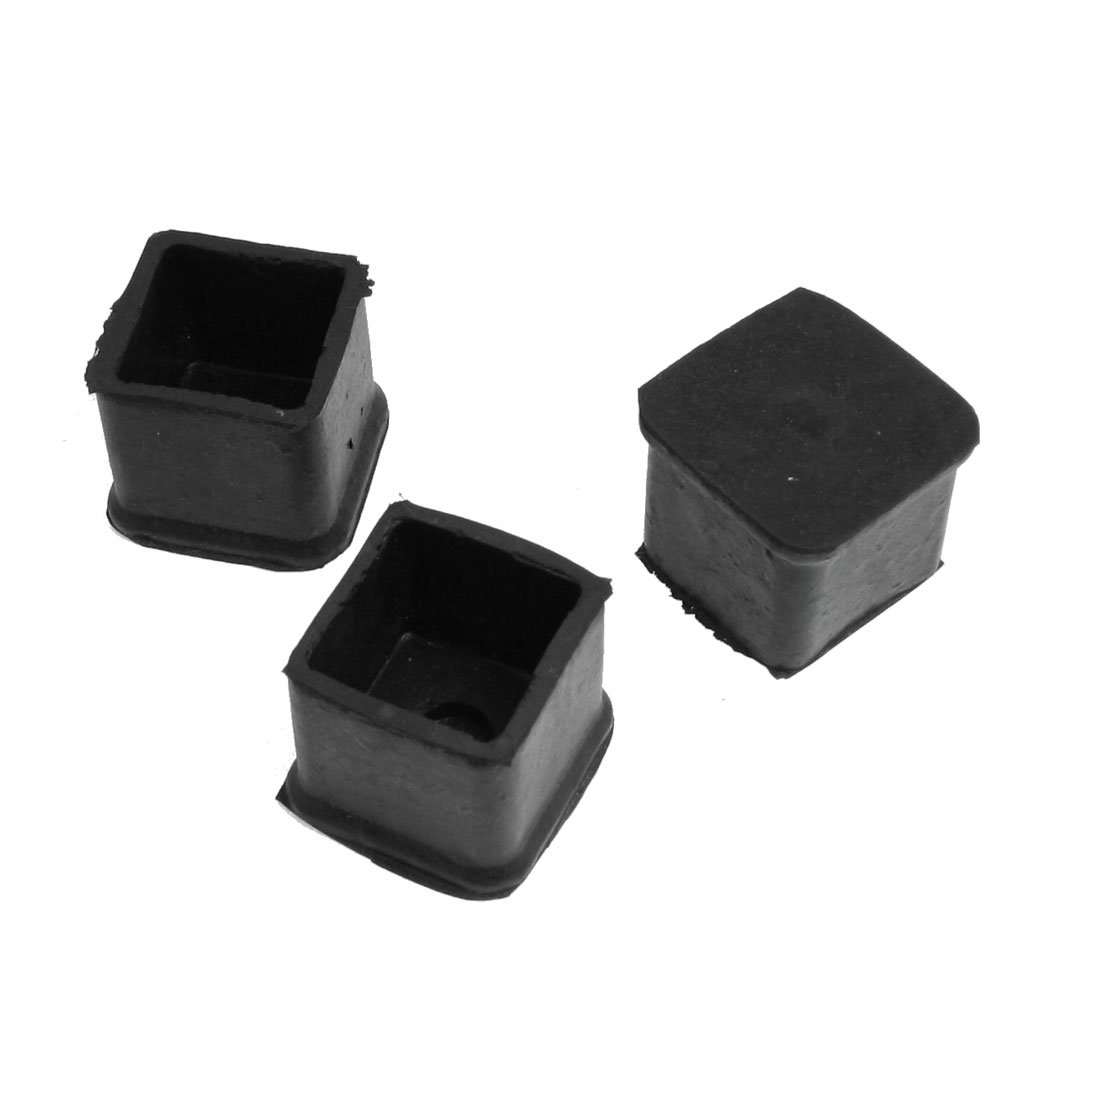 30mm x 30mm Black Square Chair Table Rubber Foot Covers 3 Pcs